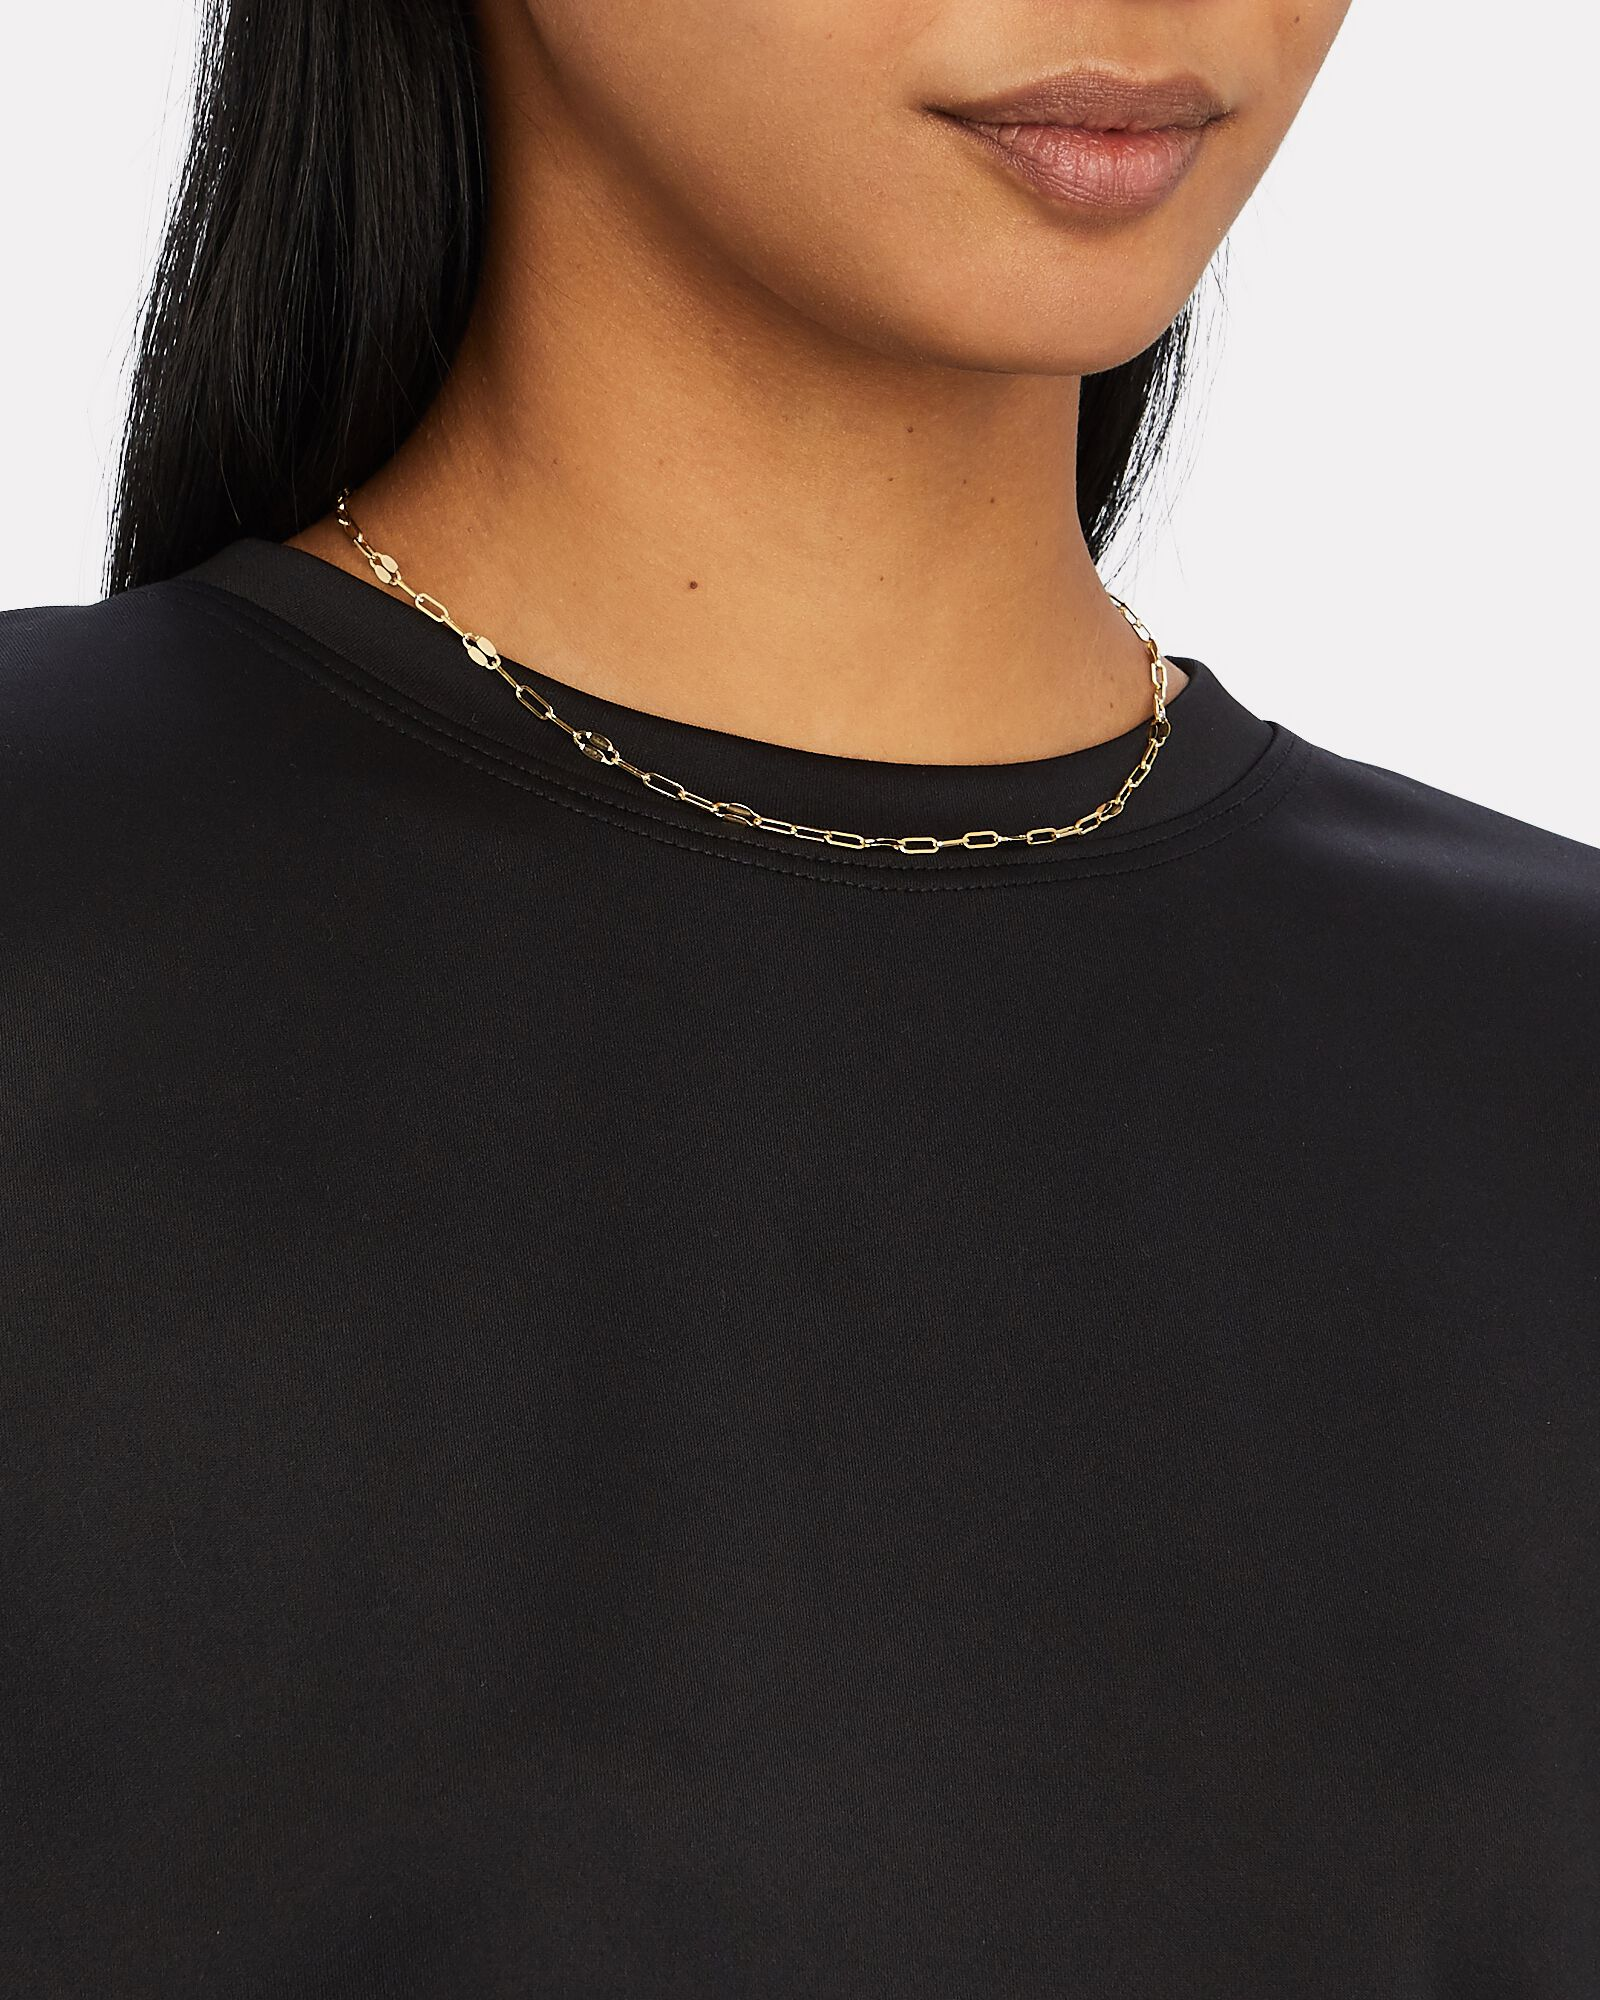 Mirror Chain Necklace, GOLD, hi-res